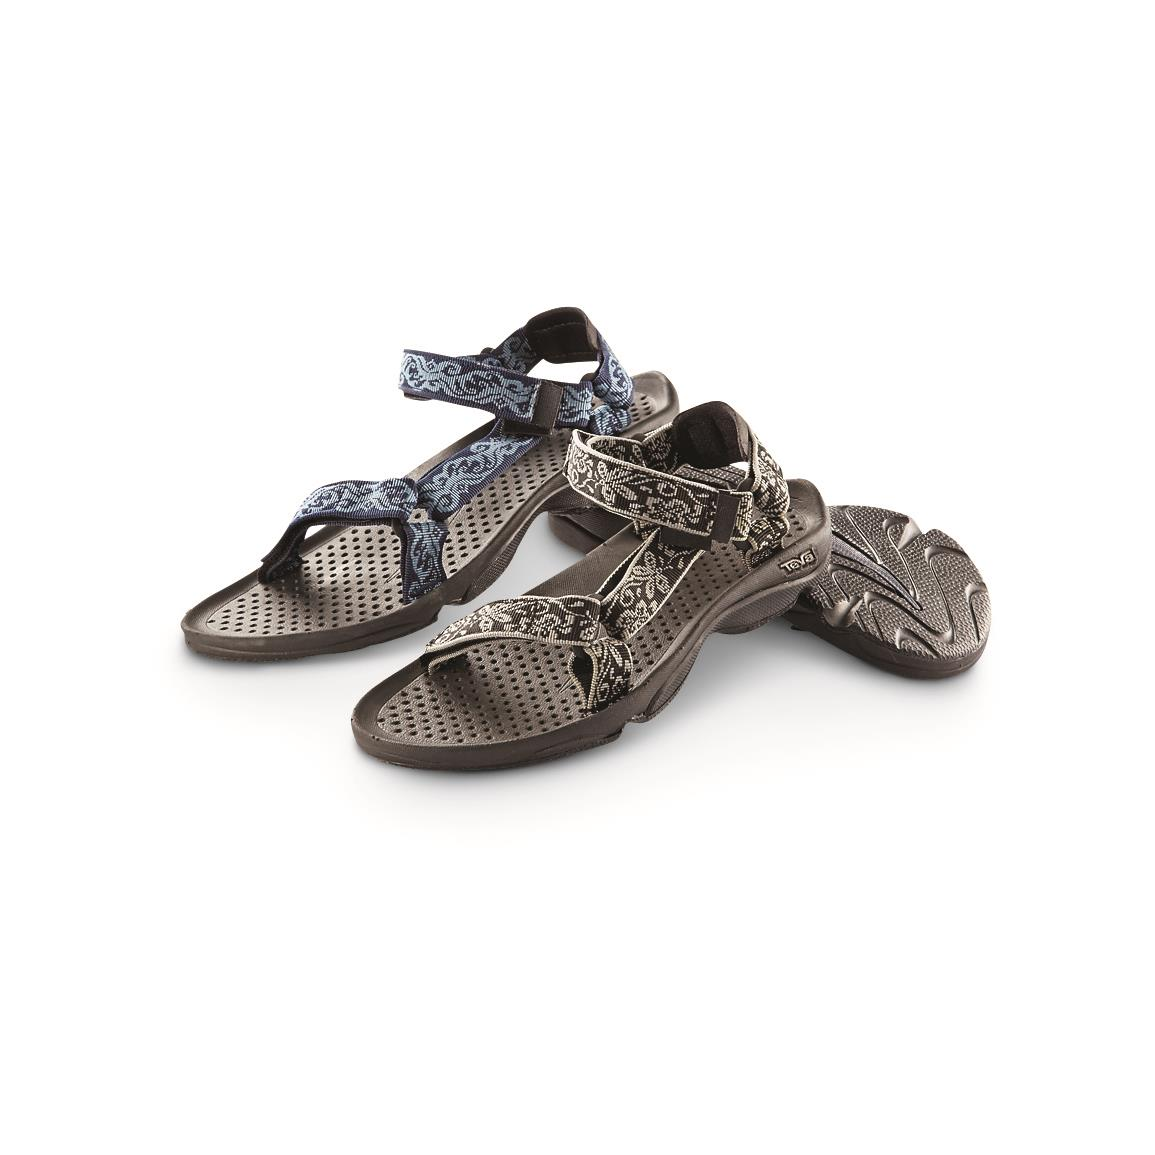 Women's Teva Hurricane 3 Sandals